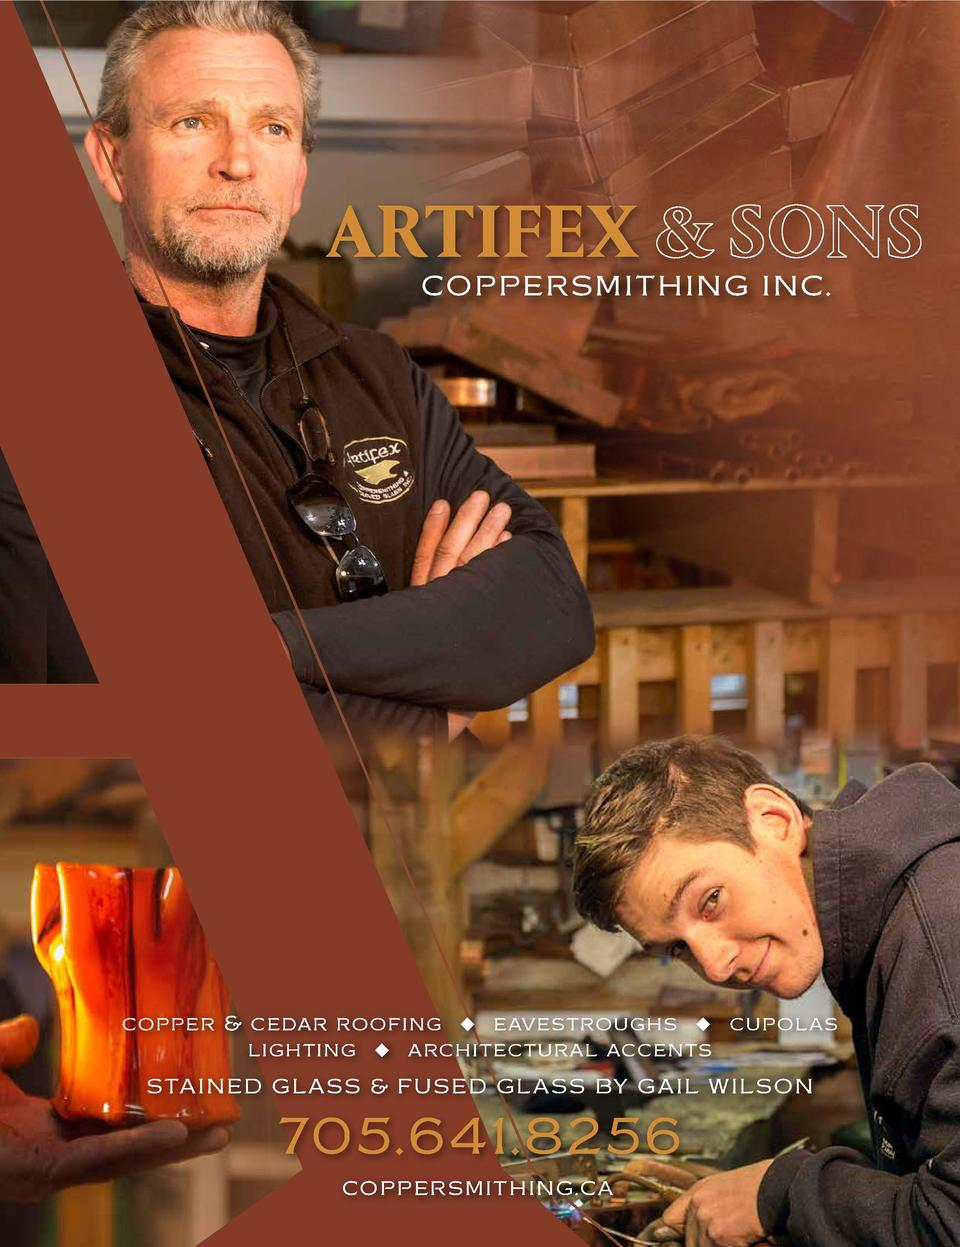 ARTIFEX  COPPERSMITHING INC.  copper   cedar roofing u eavestroughs u cupolas lighting u architectural accents STAINED GLA...